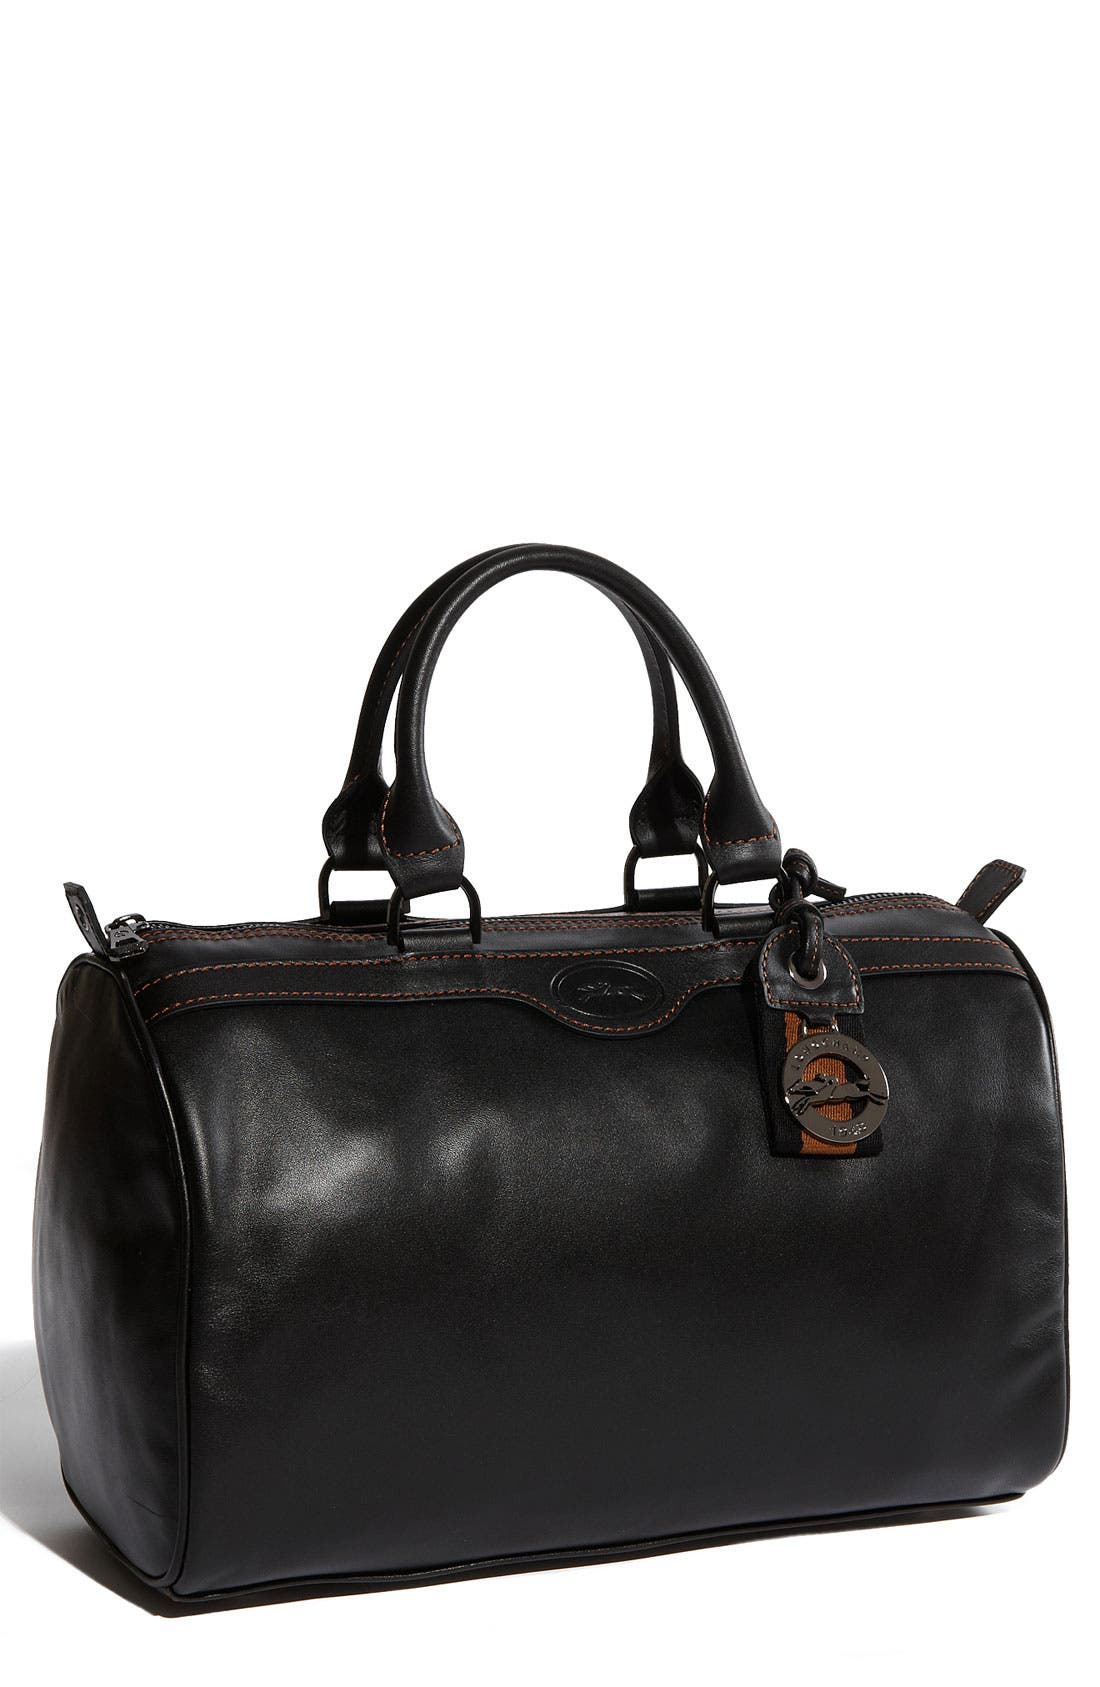 Main Image - Longchamp 'Au Sultan' Leather Satchel